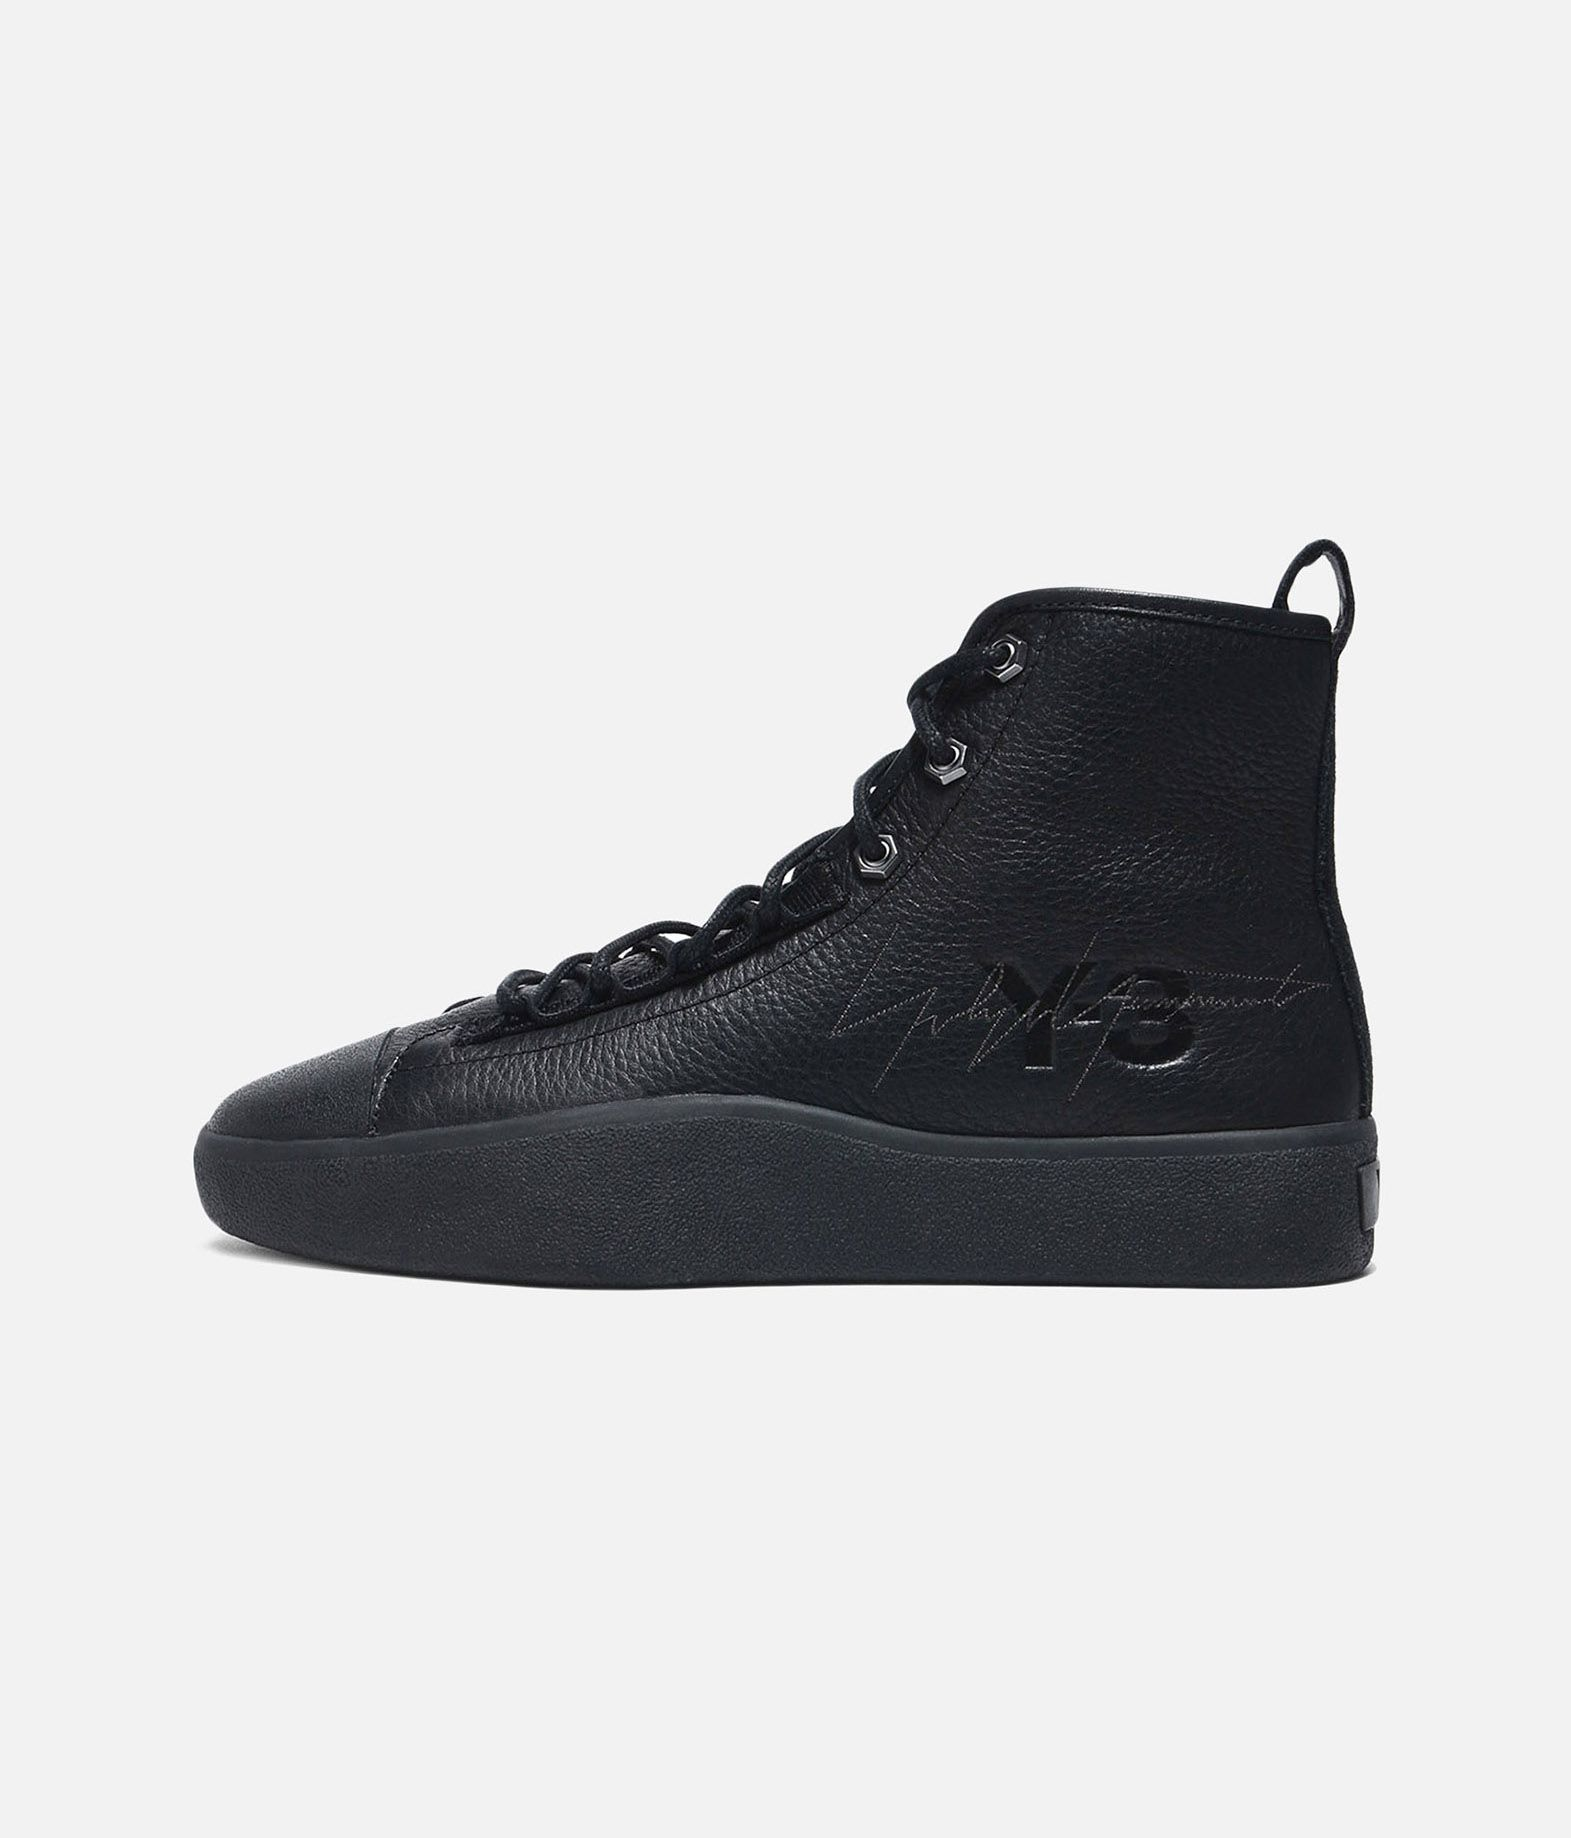 49359cdba ... Y-3 Y-3 Bashyo II High-top sneakers E f ...